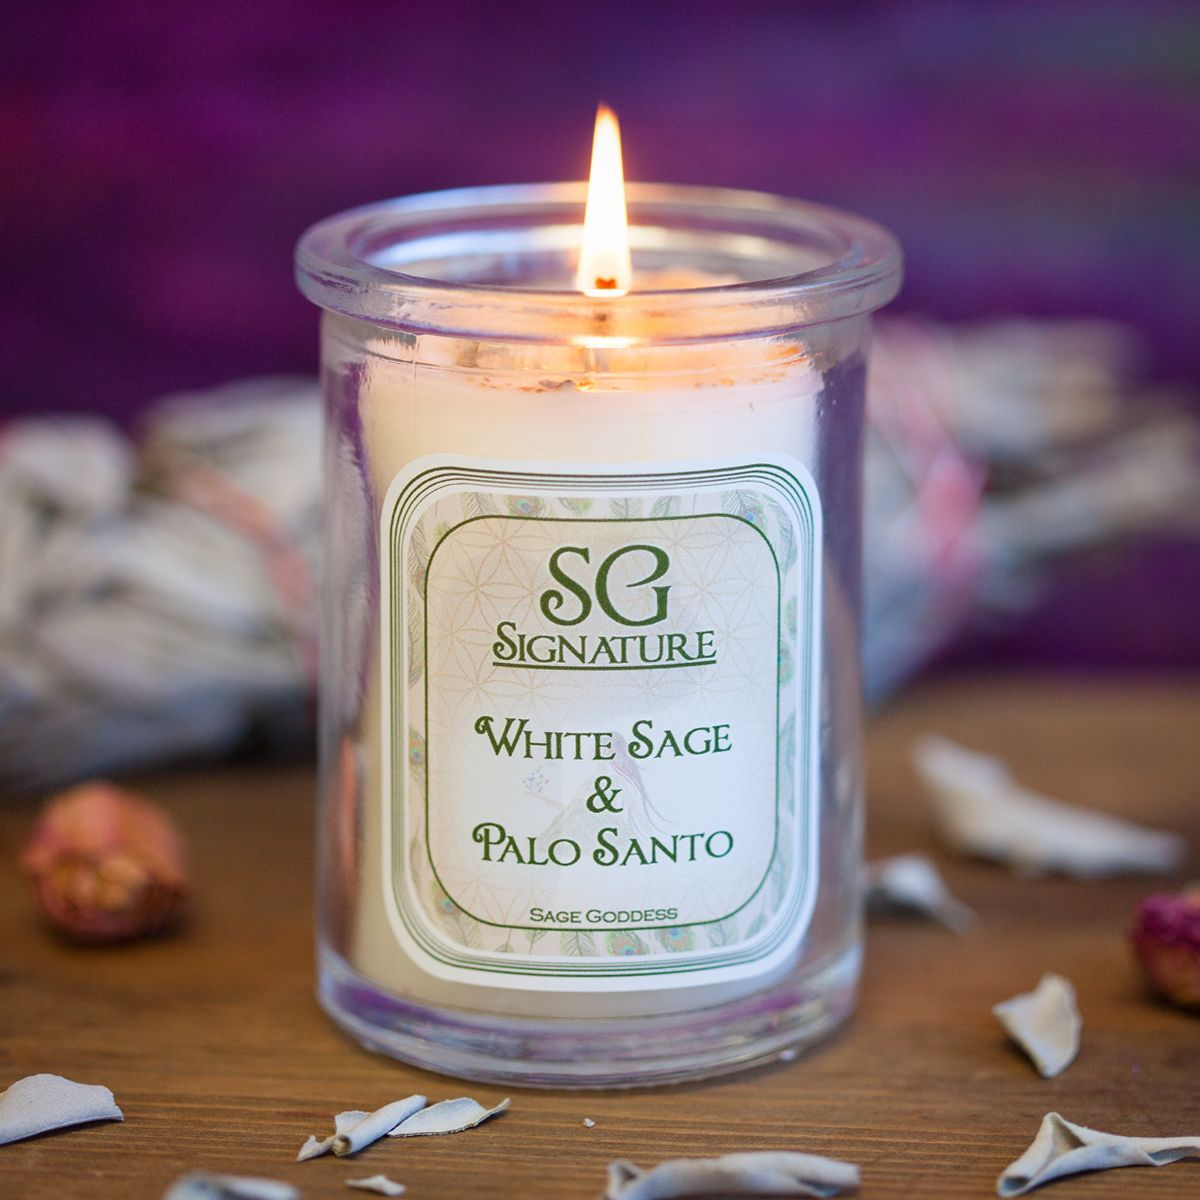 Sg Signature White Sage And Palo Santo Intention Candles For Purification Intention Candles Smudging Hand Poured Candle